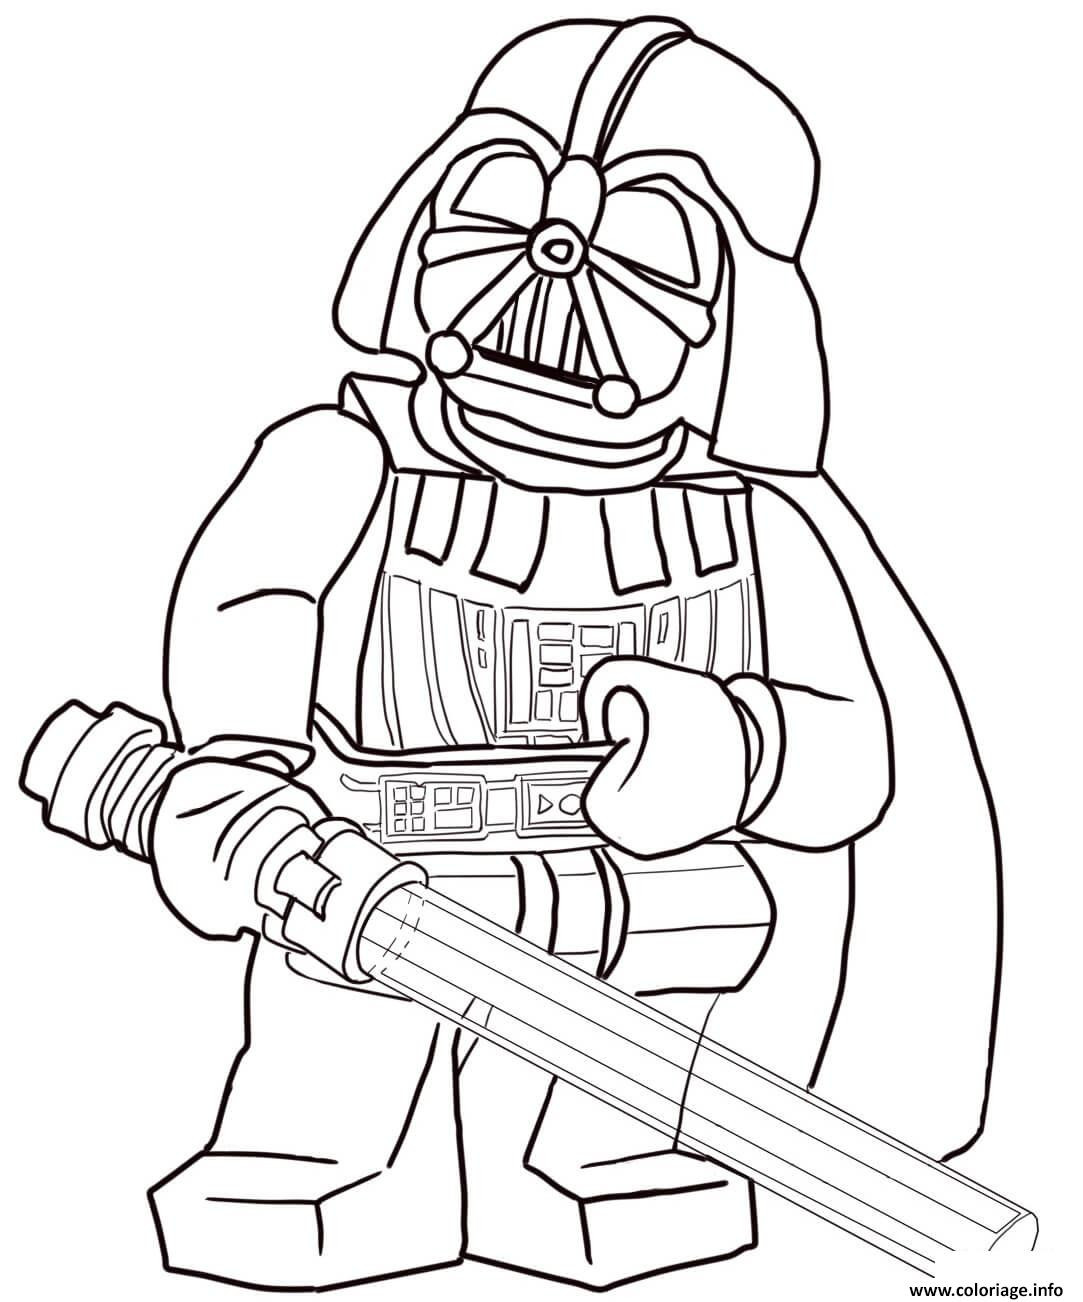 Lego Star Wars Coloring Pages  Coloriage Lego Star Wars 5 on with HD Resolution 1083x1302